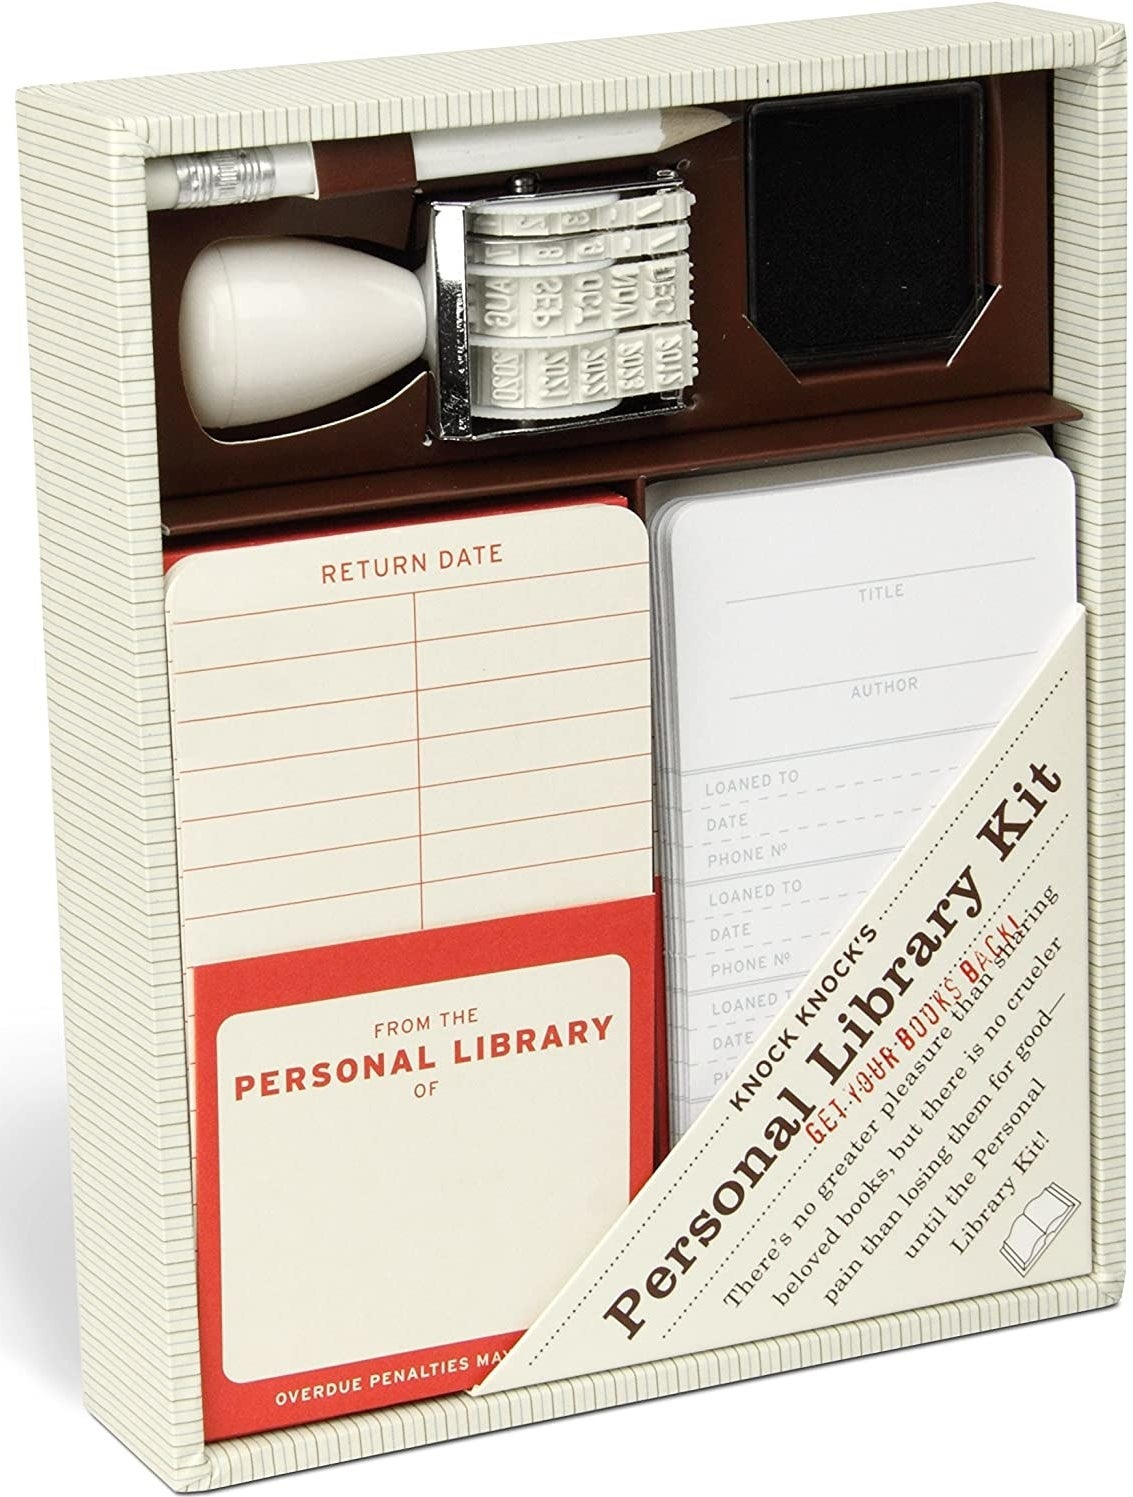 A personal library kit with a stamp with dates, ink, and paper with return dates